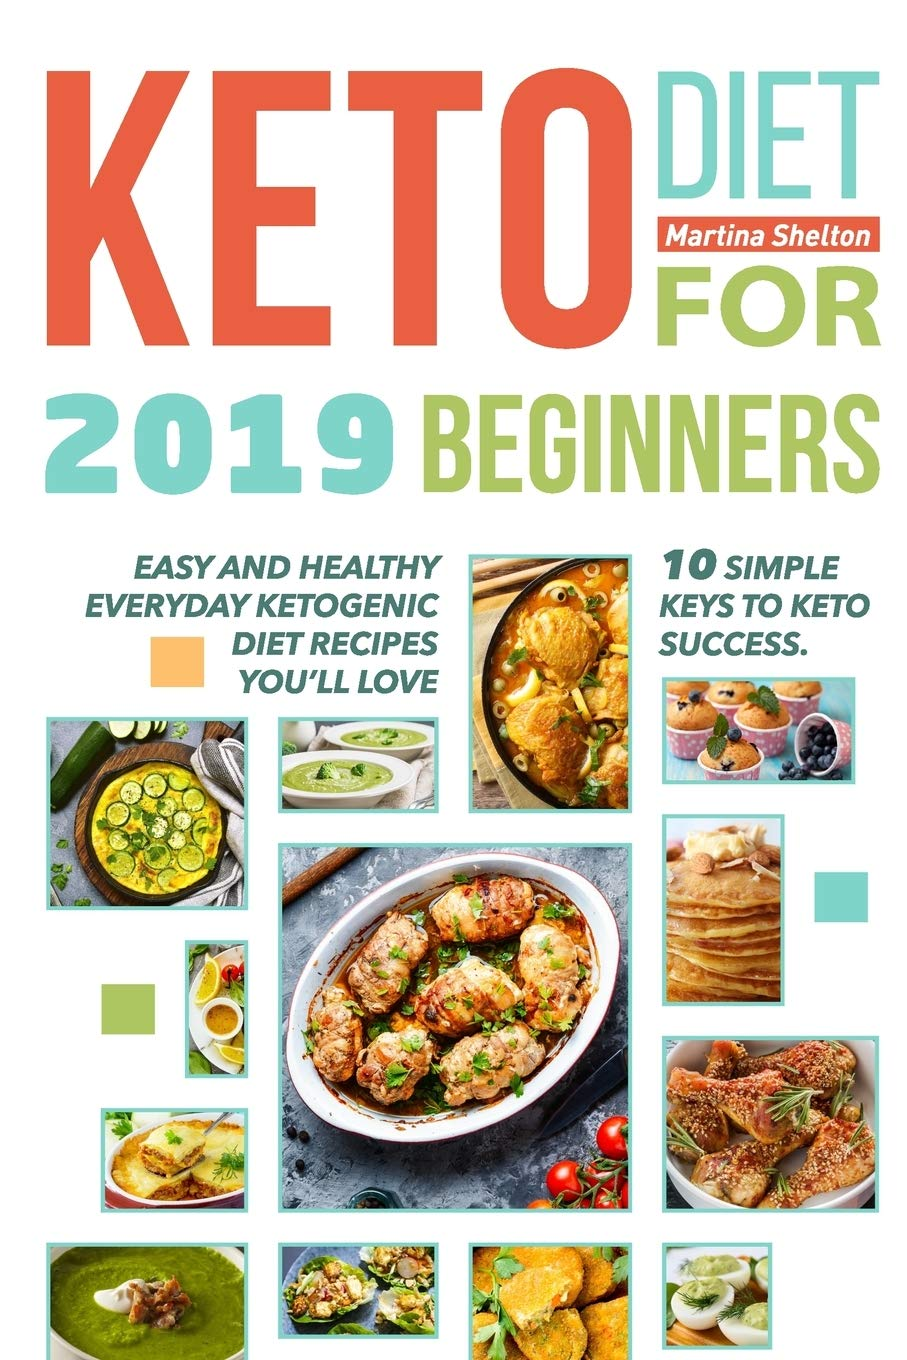 Keto Diet For Beginners 2019 10 Simple Keys To Keto Success Easy And Healthy Everyday Ketogenic Diet Recipes You Ll Love Shelton Martina Shelton Martina 9781689887090 Amazon Com Books